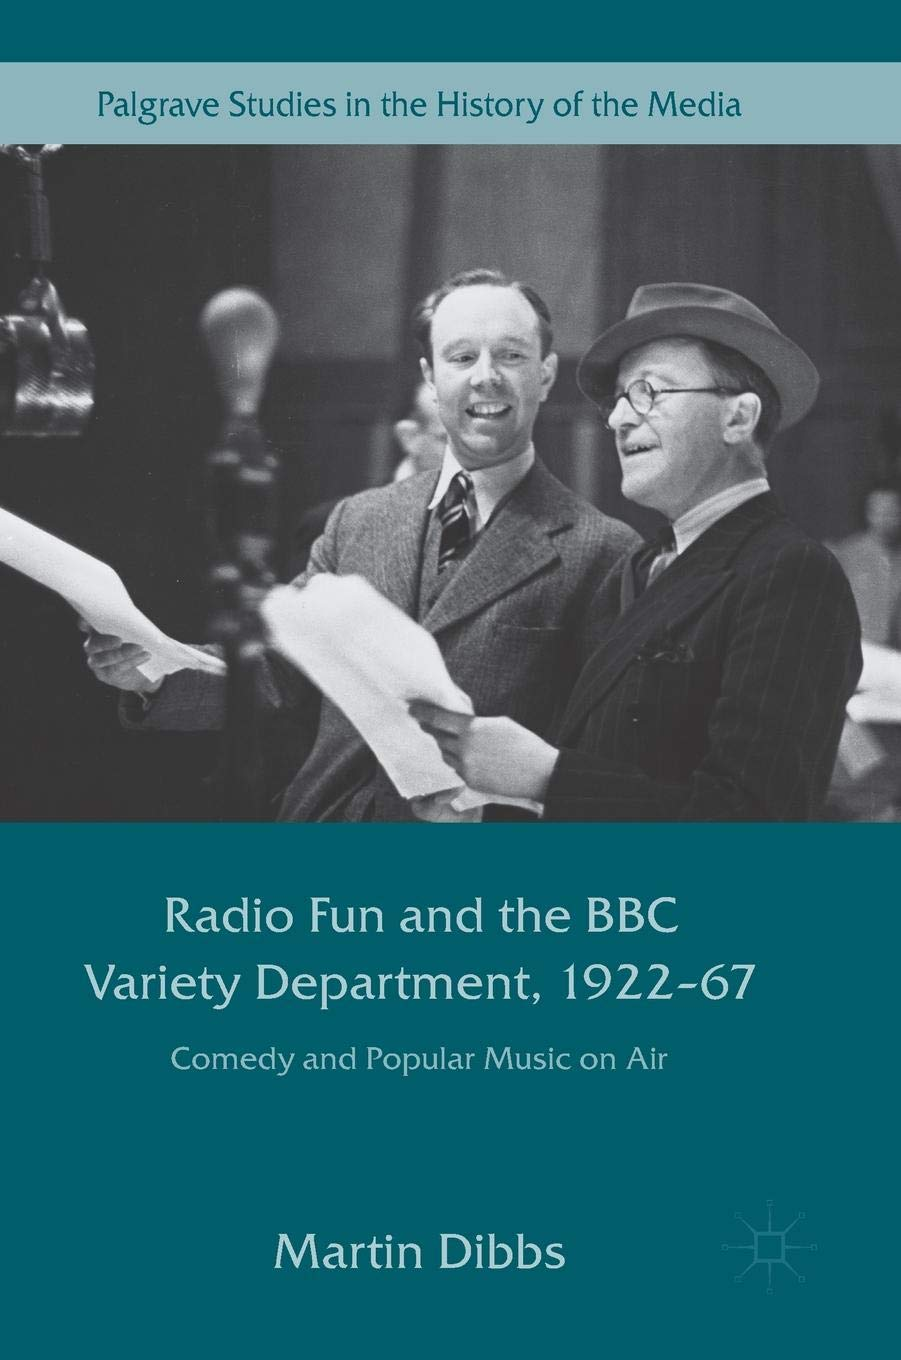 Radio Fun and the BBC Variety Department, 1922-67: Comedy